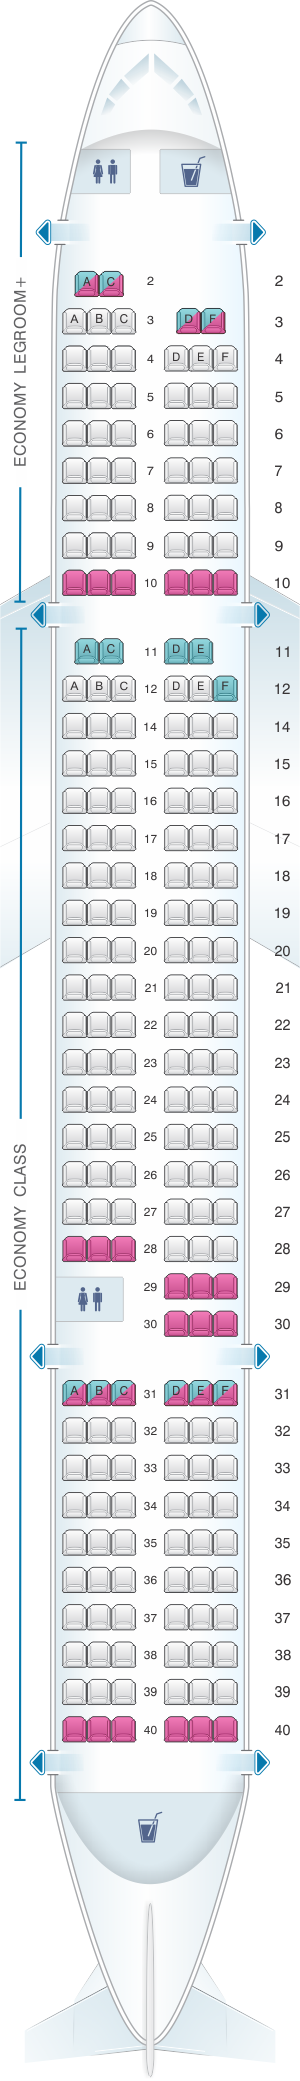 Seat map for Allegiant Air Boeing B757 200